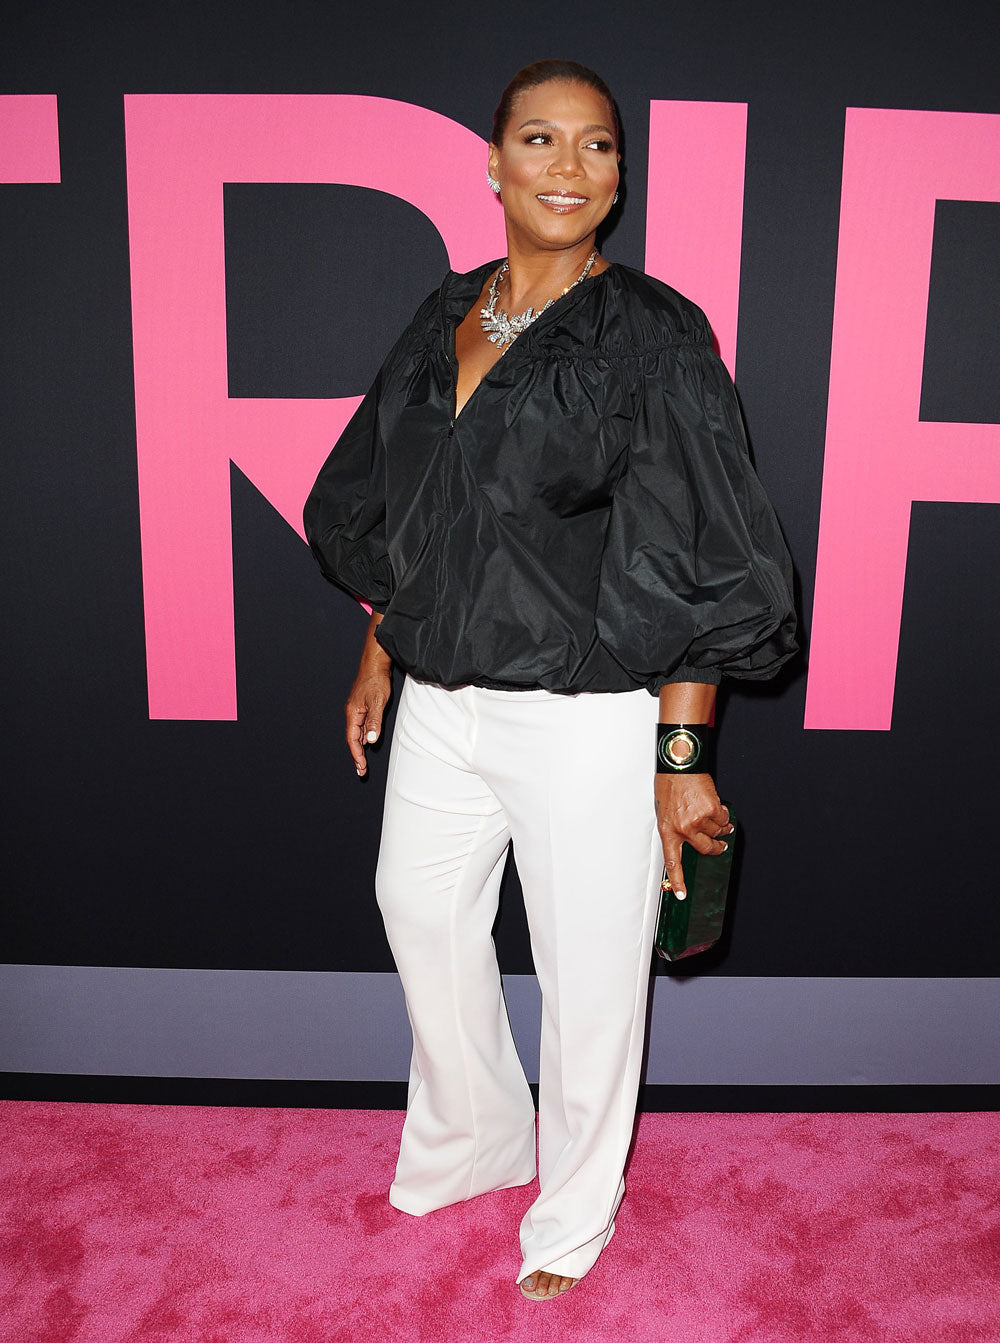 Queen Latifah dressed by Tim Snell